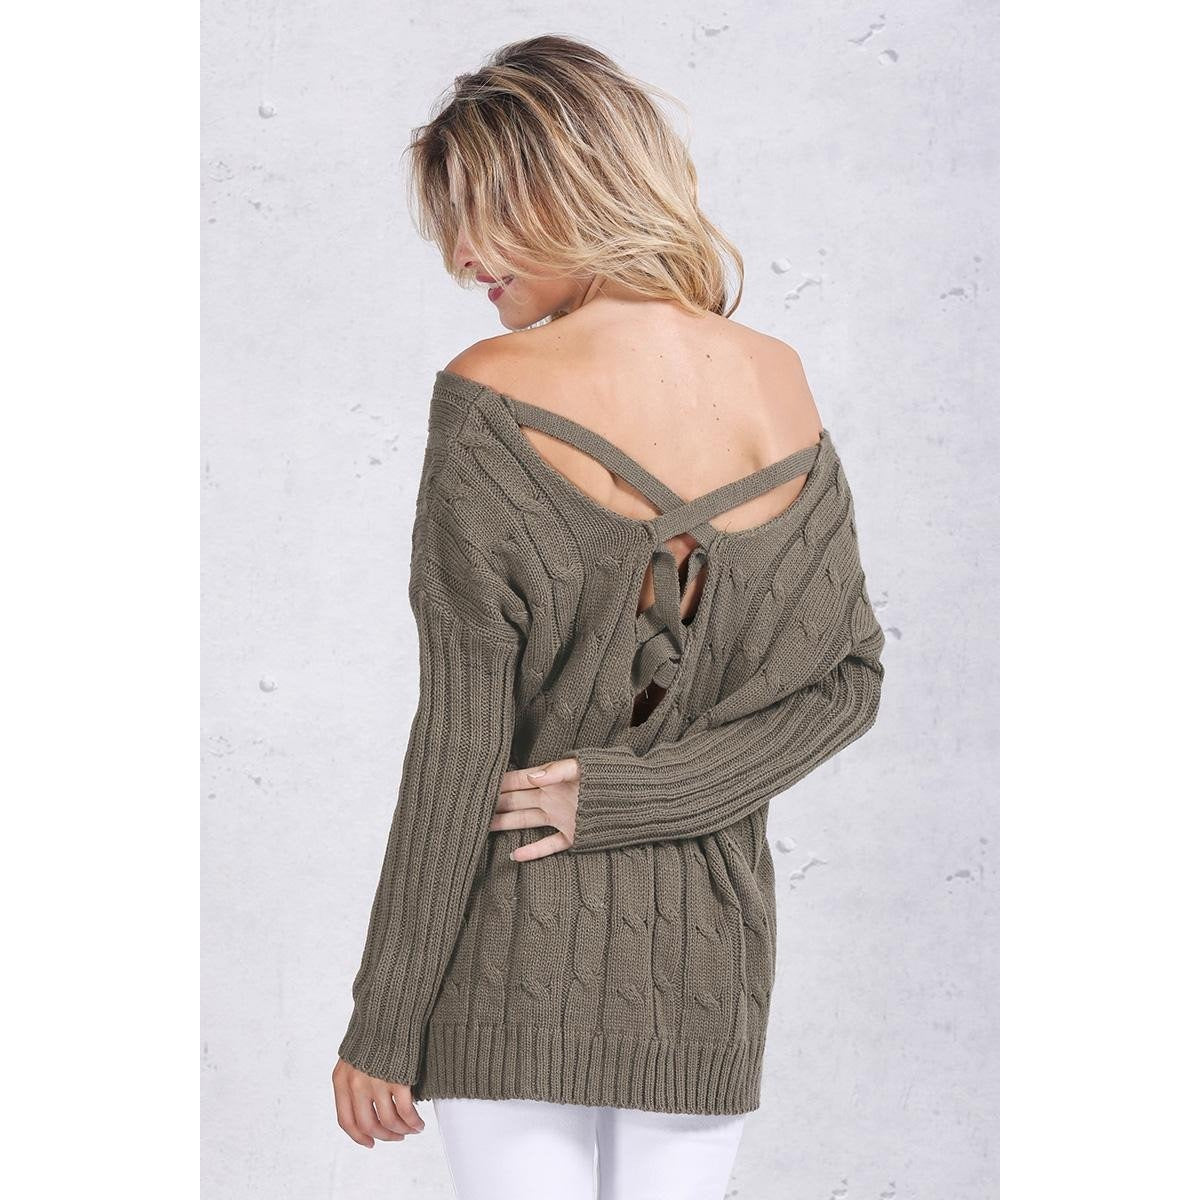 The Gabriella Knit Pullover is a one size fits all slouchy off shoulder lounge sweater with criss cross cutout design on the back. Available in olive green or white.